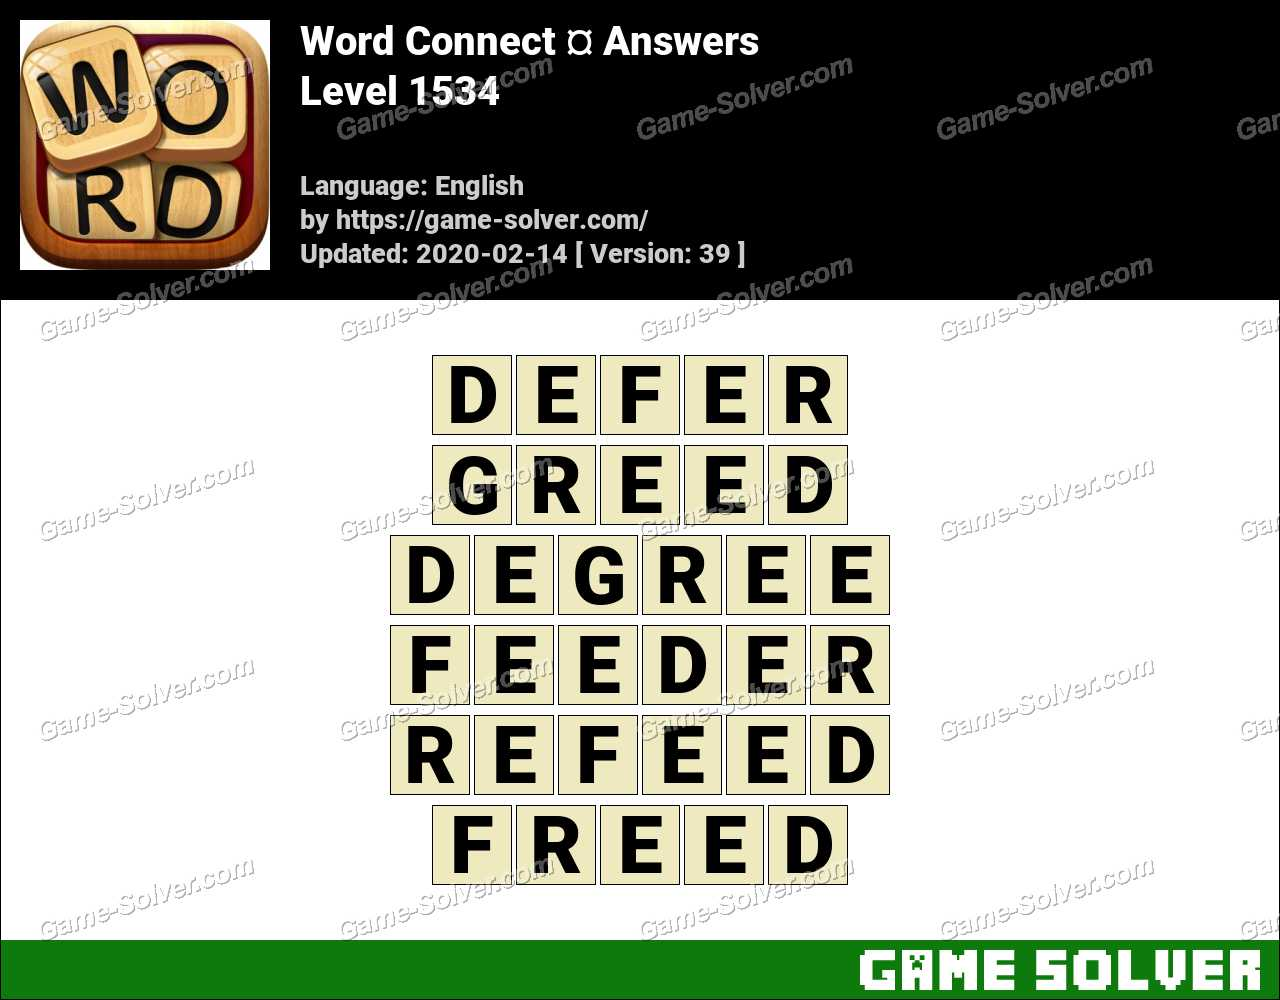 Word Connect Level 1534 Answers